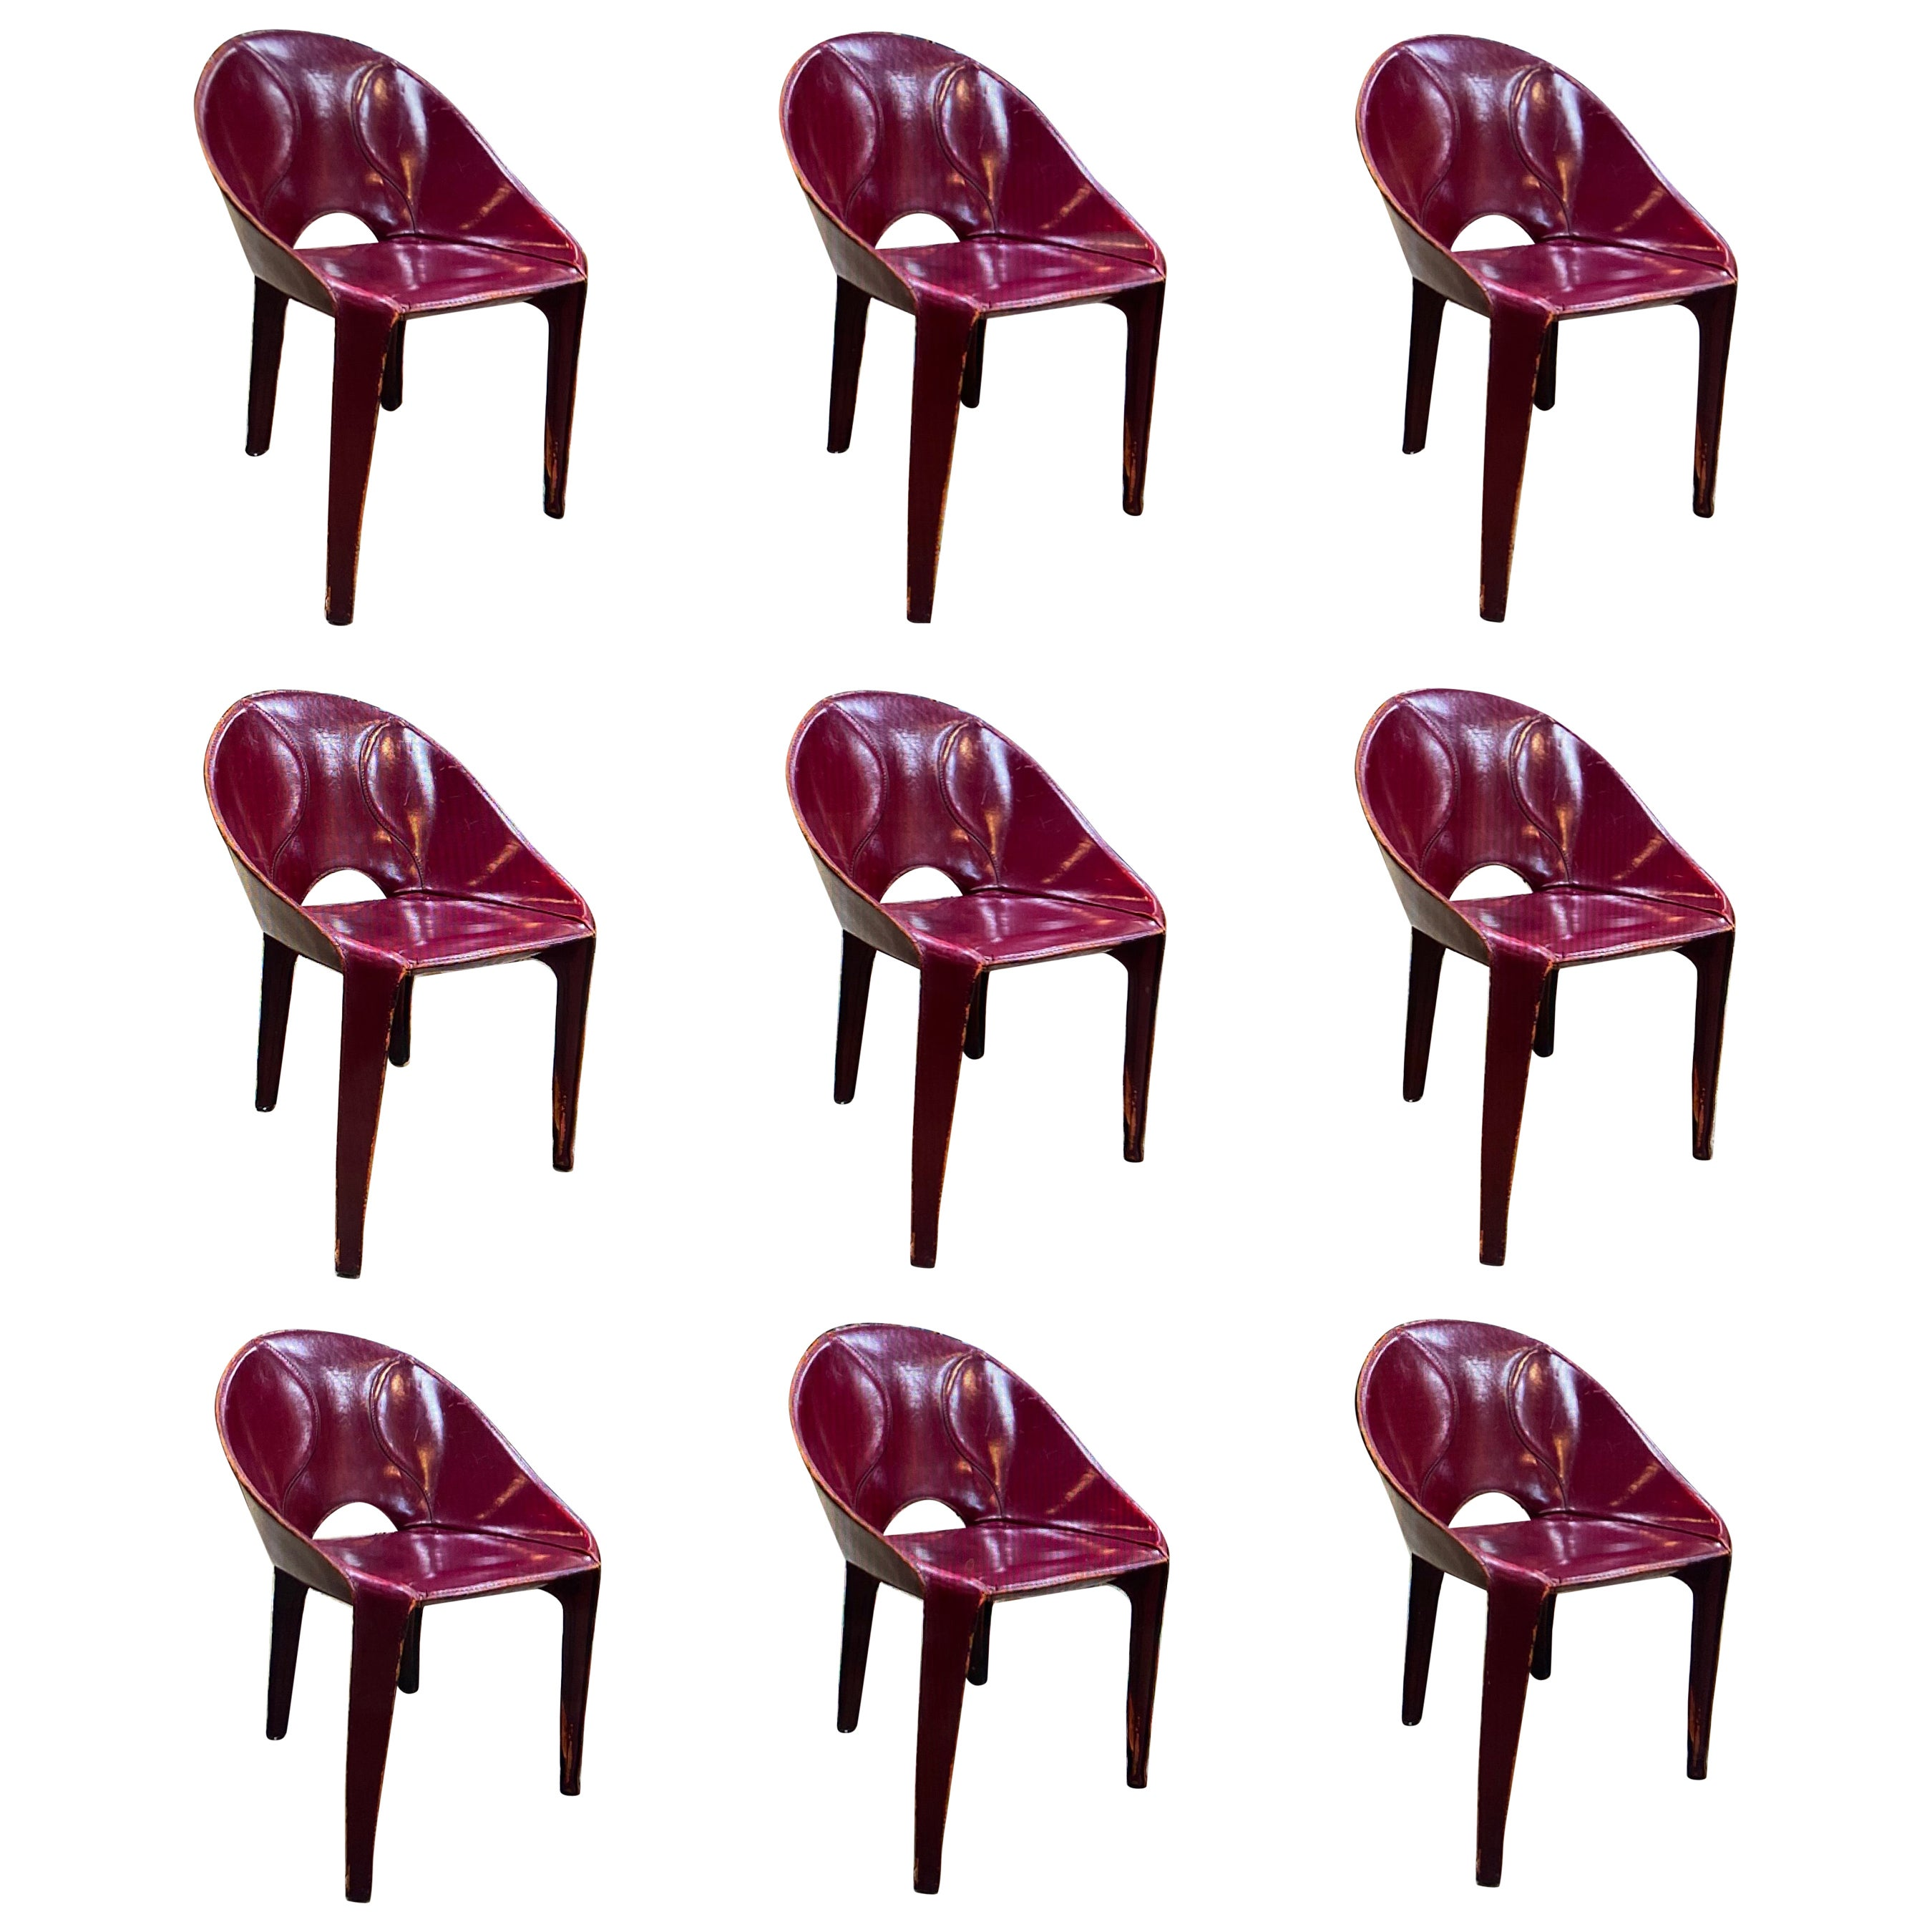 Set of 9 Dining Chairs for Cassina Studio, 1970s, Italy